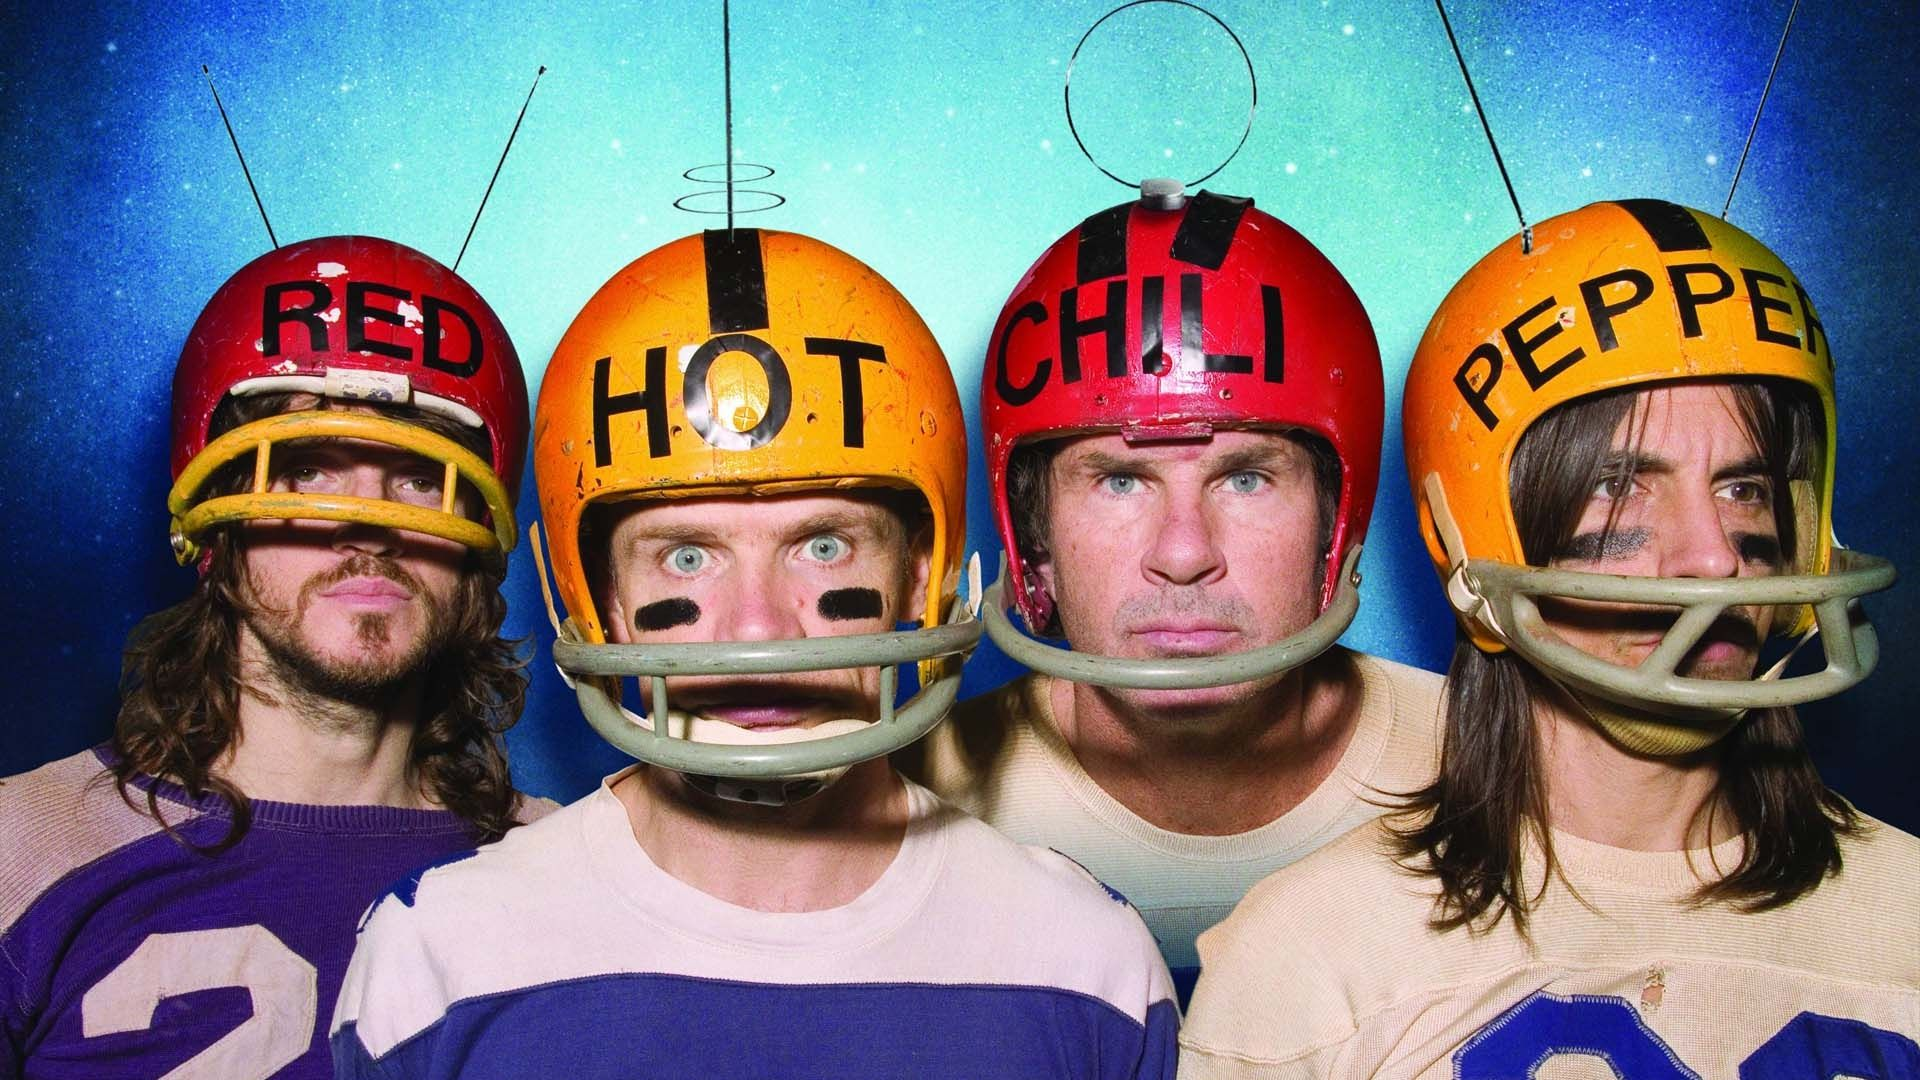 Red Hot Chili Peppers HD Wallpapers Backgrounds Wallpaper